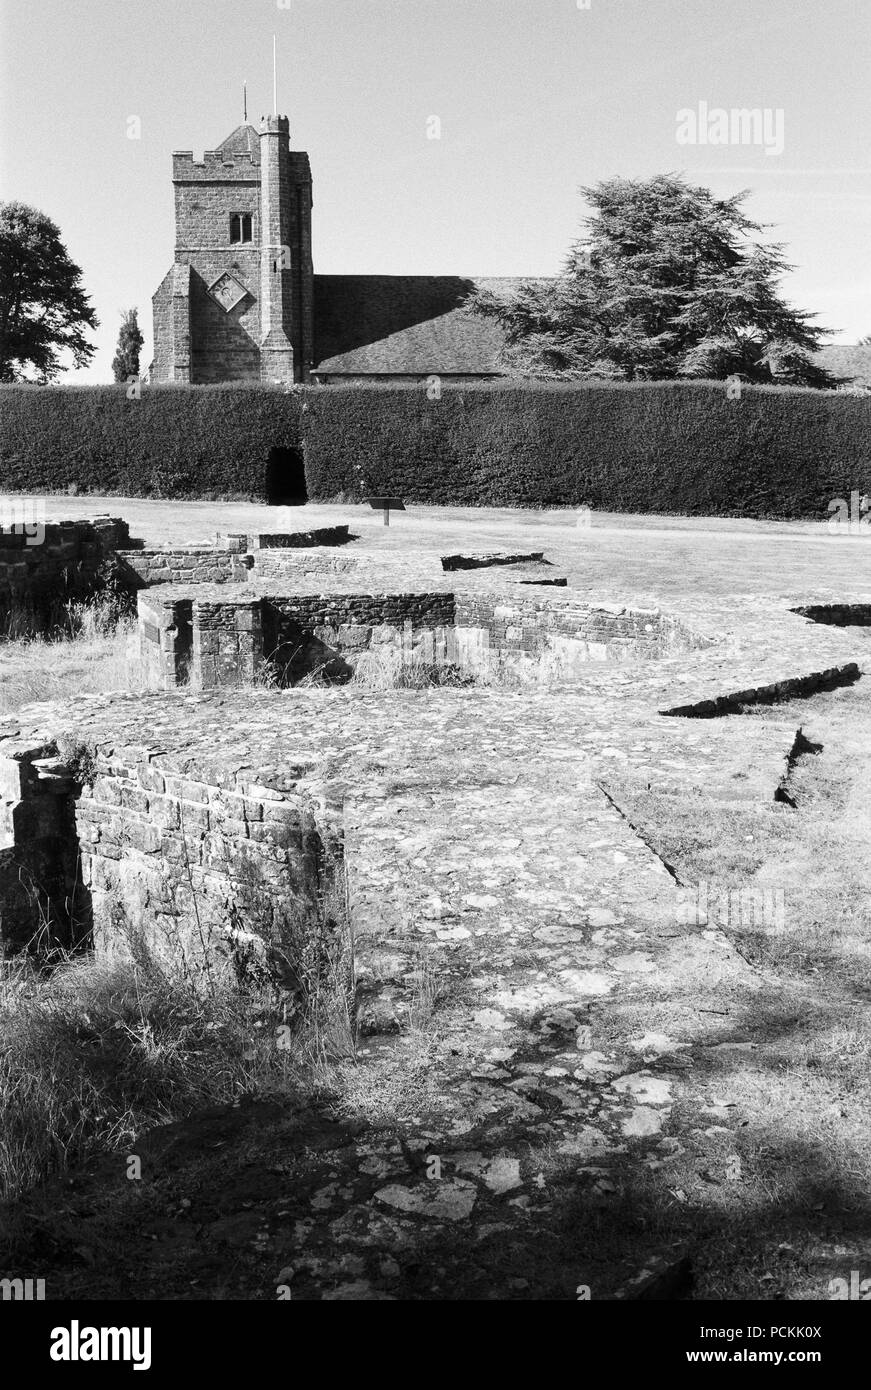 Remains of part of Battle Abbey, East Sussex, UK, with St Mary's church outside the grounds in the background - Stock Image